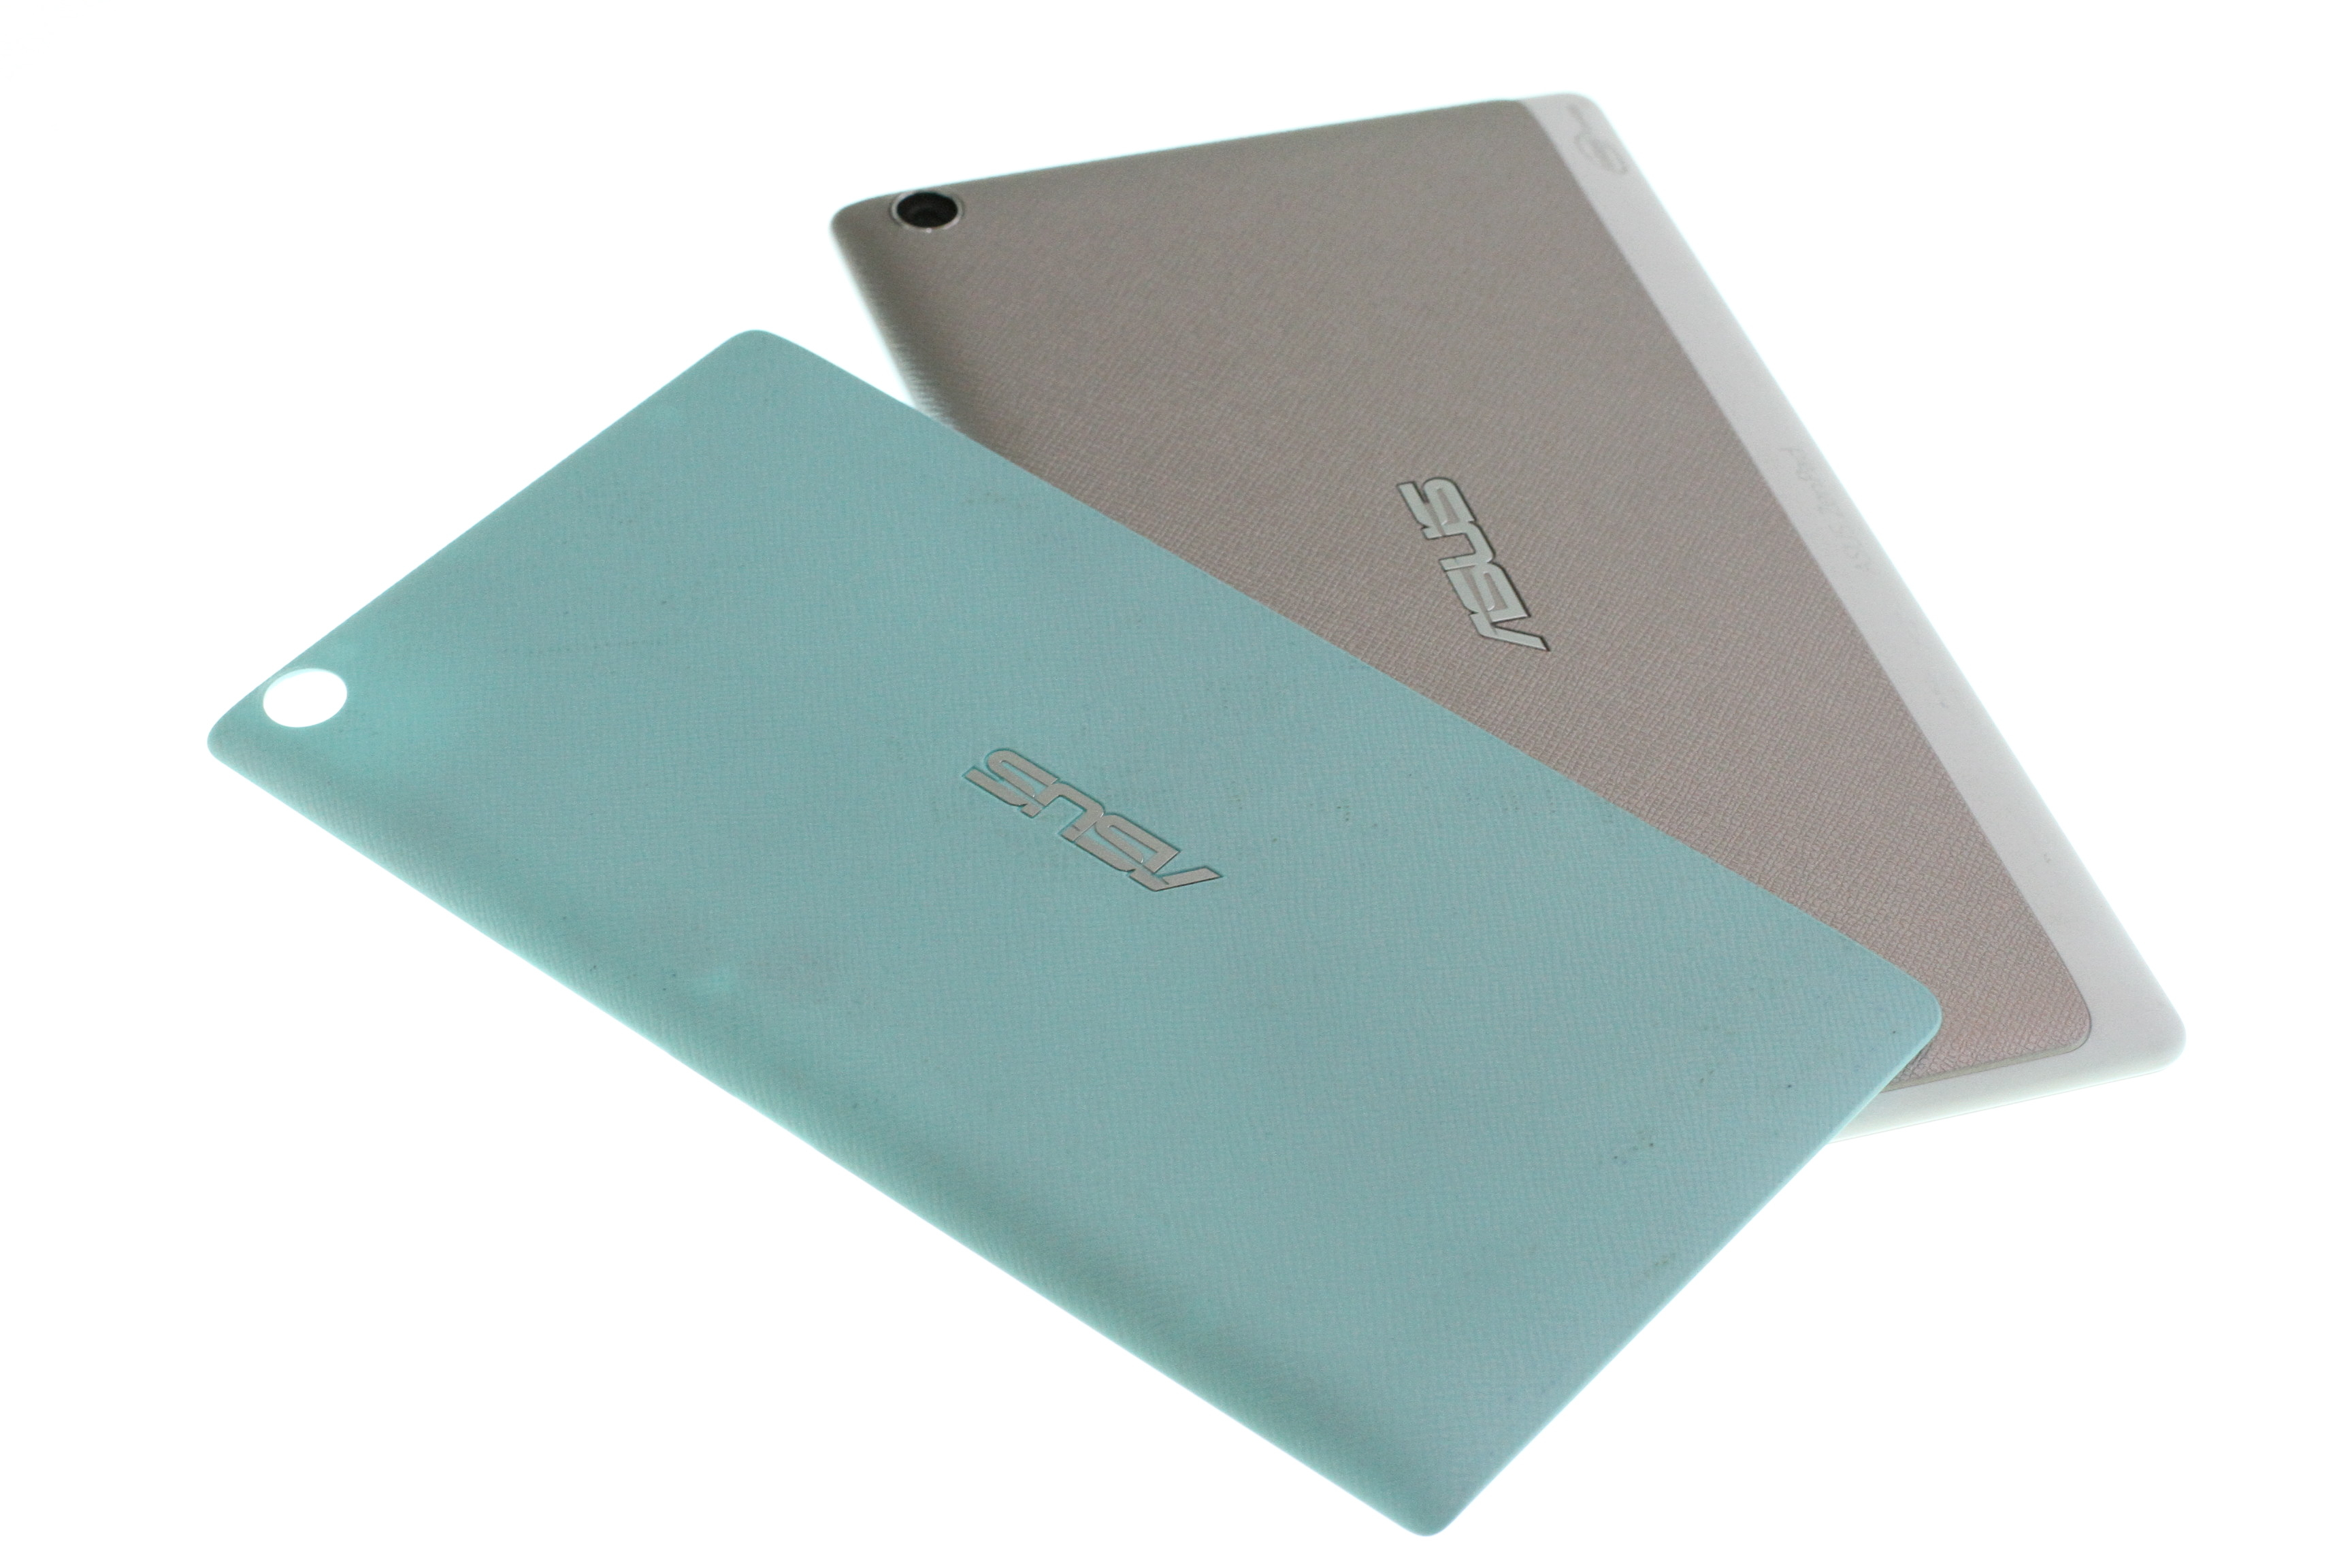 Pix of Asus tablet and accesories.